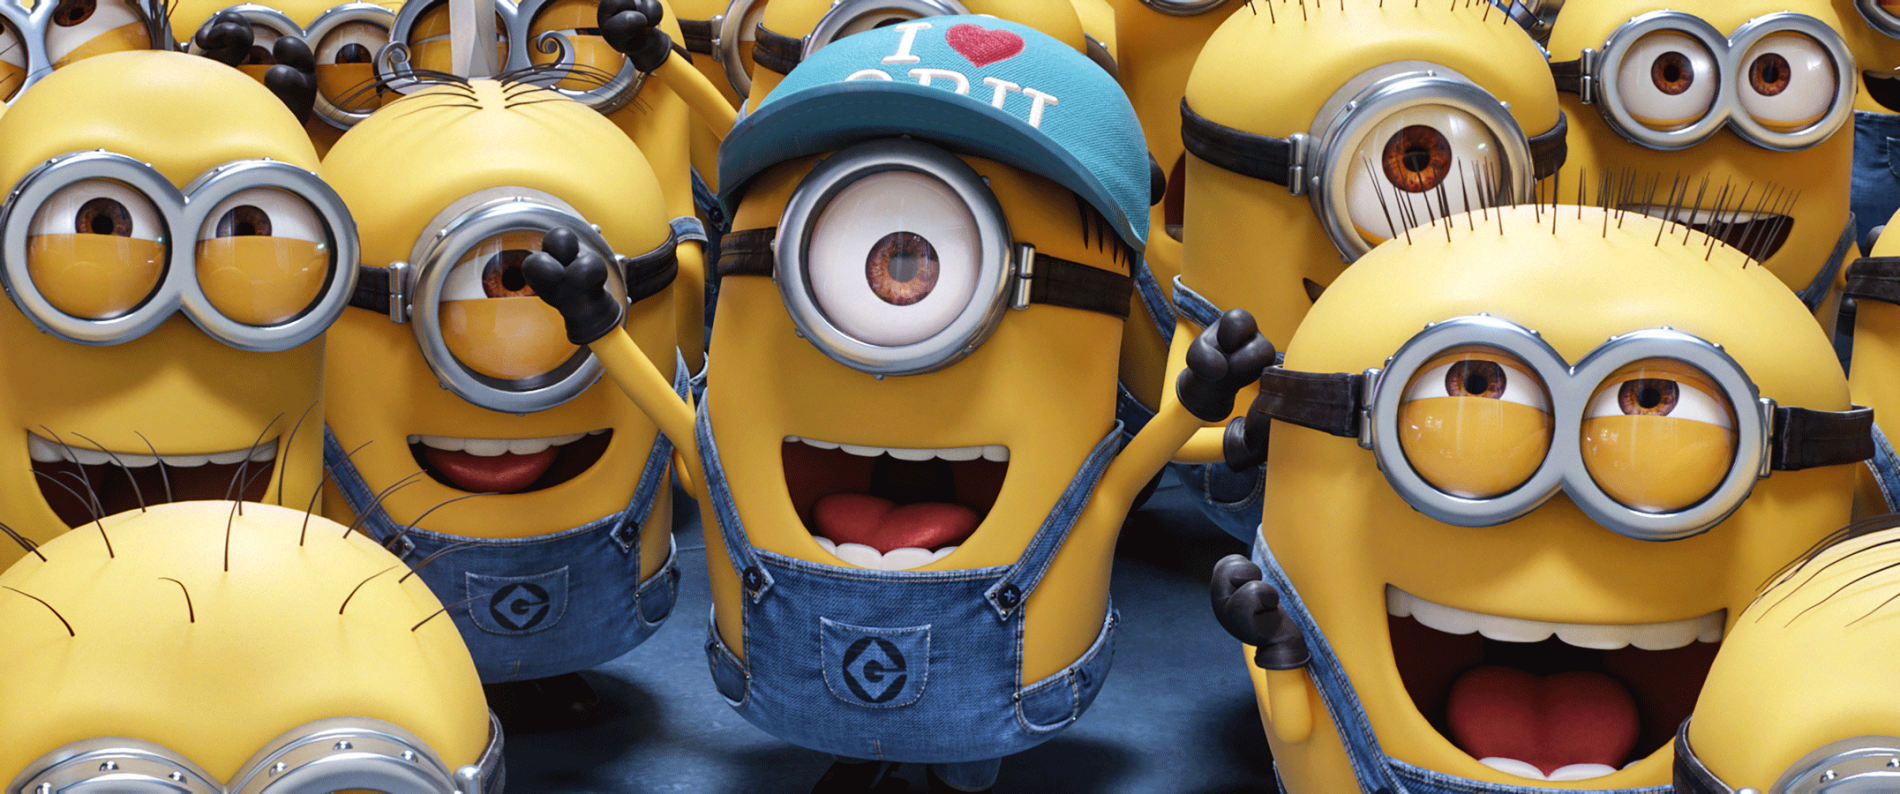 Despicable Me 3 - Photo 5